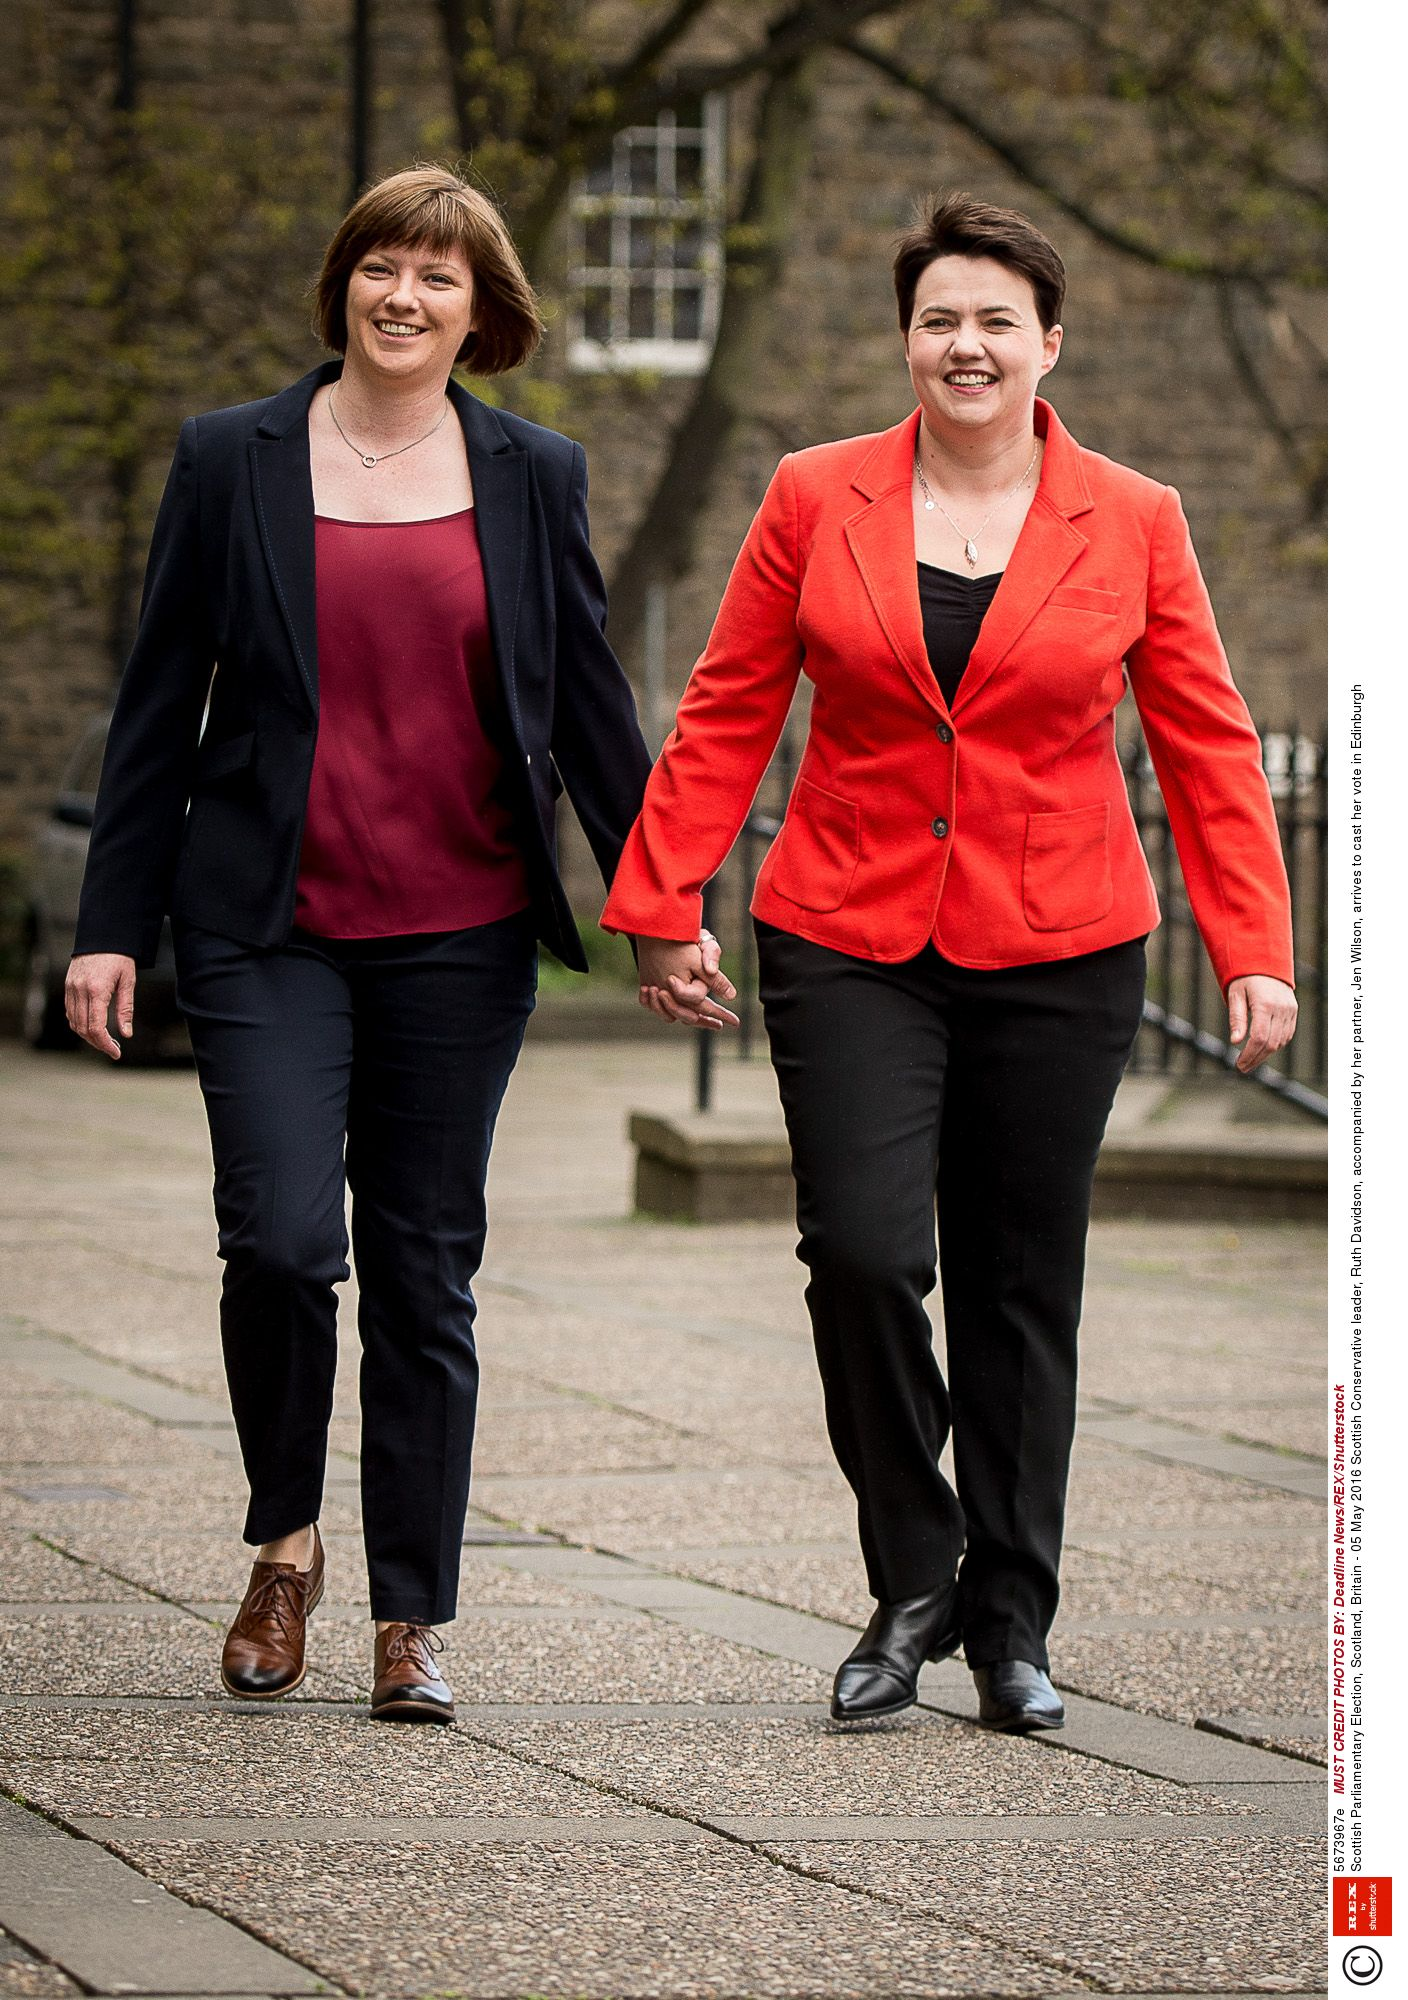 Image result for ruth davidson images